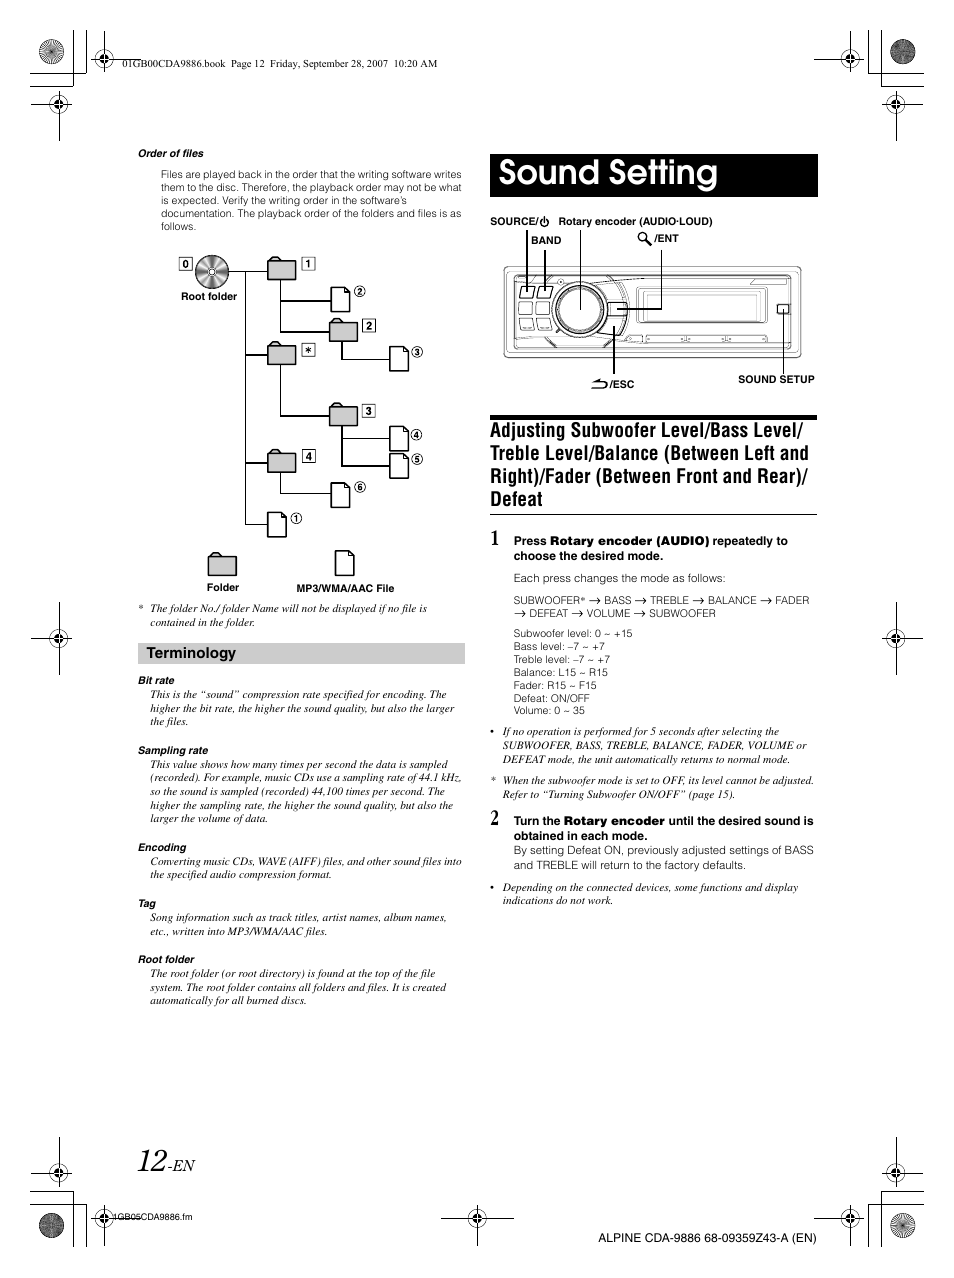 sound setting alpine cda 9886 user manual page 14 88 rh manualsdir com alpine cda-9886r manual alpine cda-9886 service manual